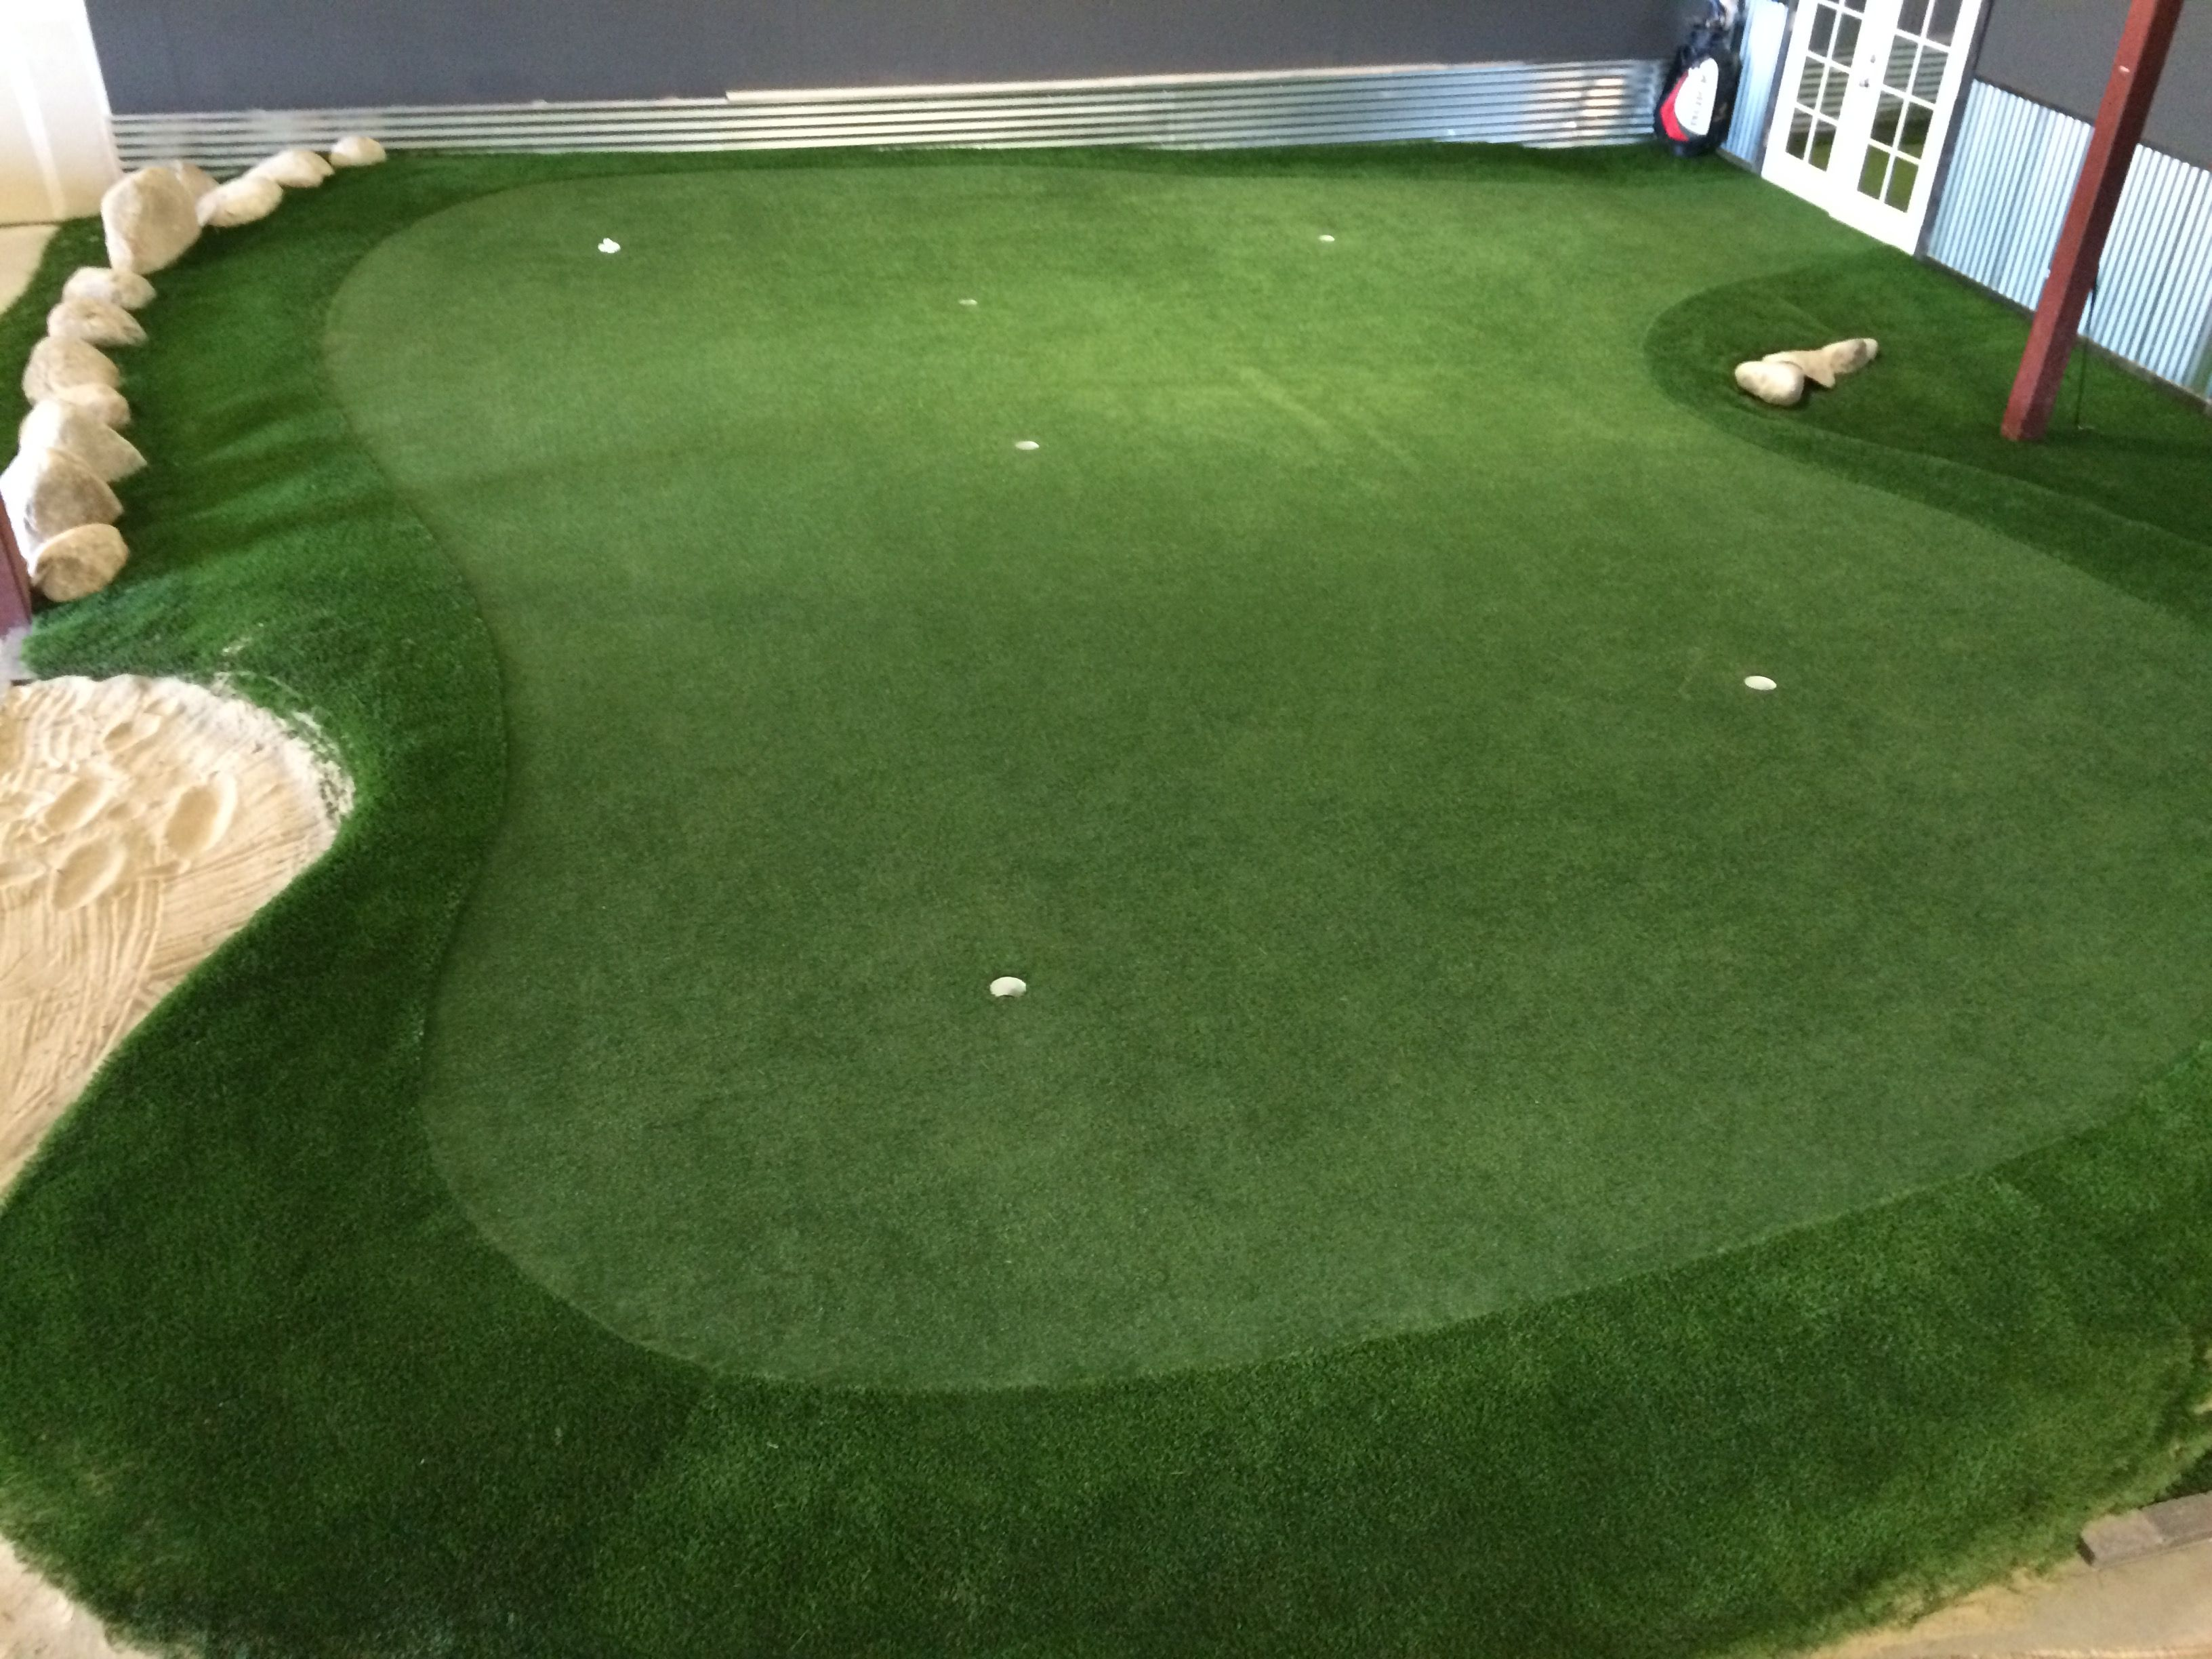 Stop by PlushGrass to try out our indoor putting and chipping green ...